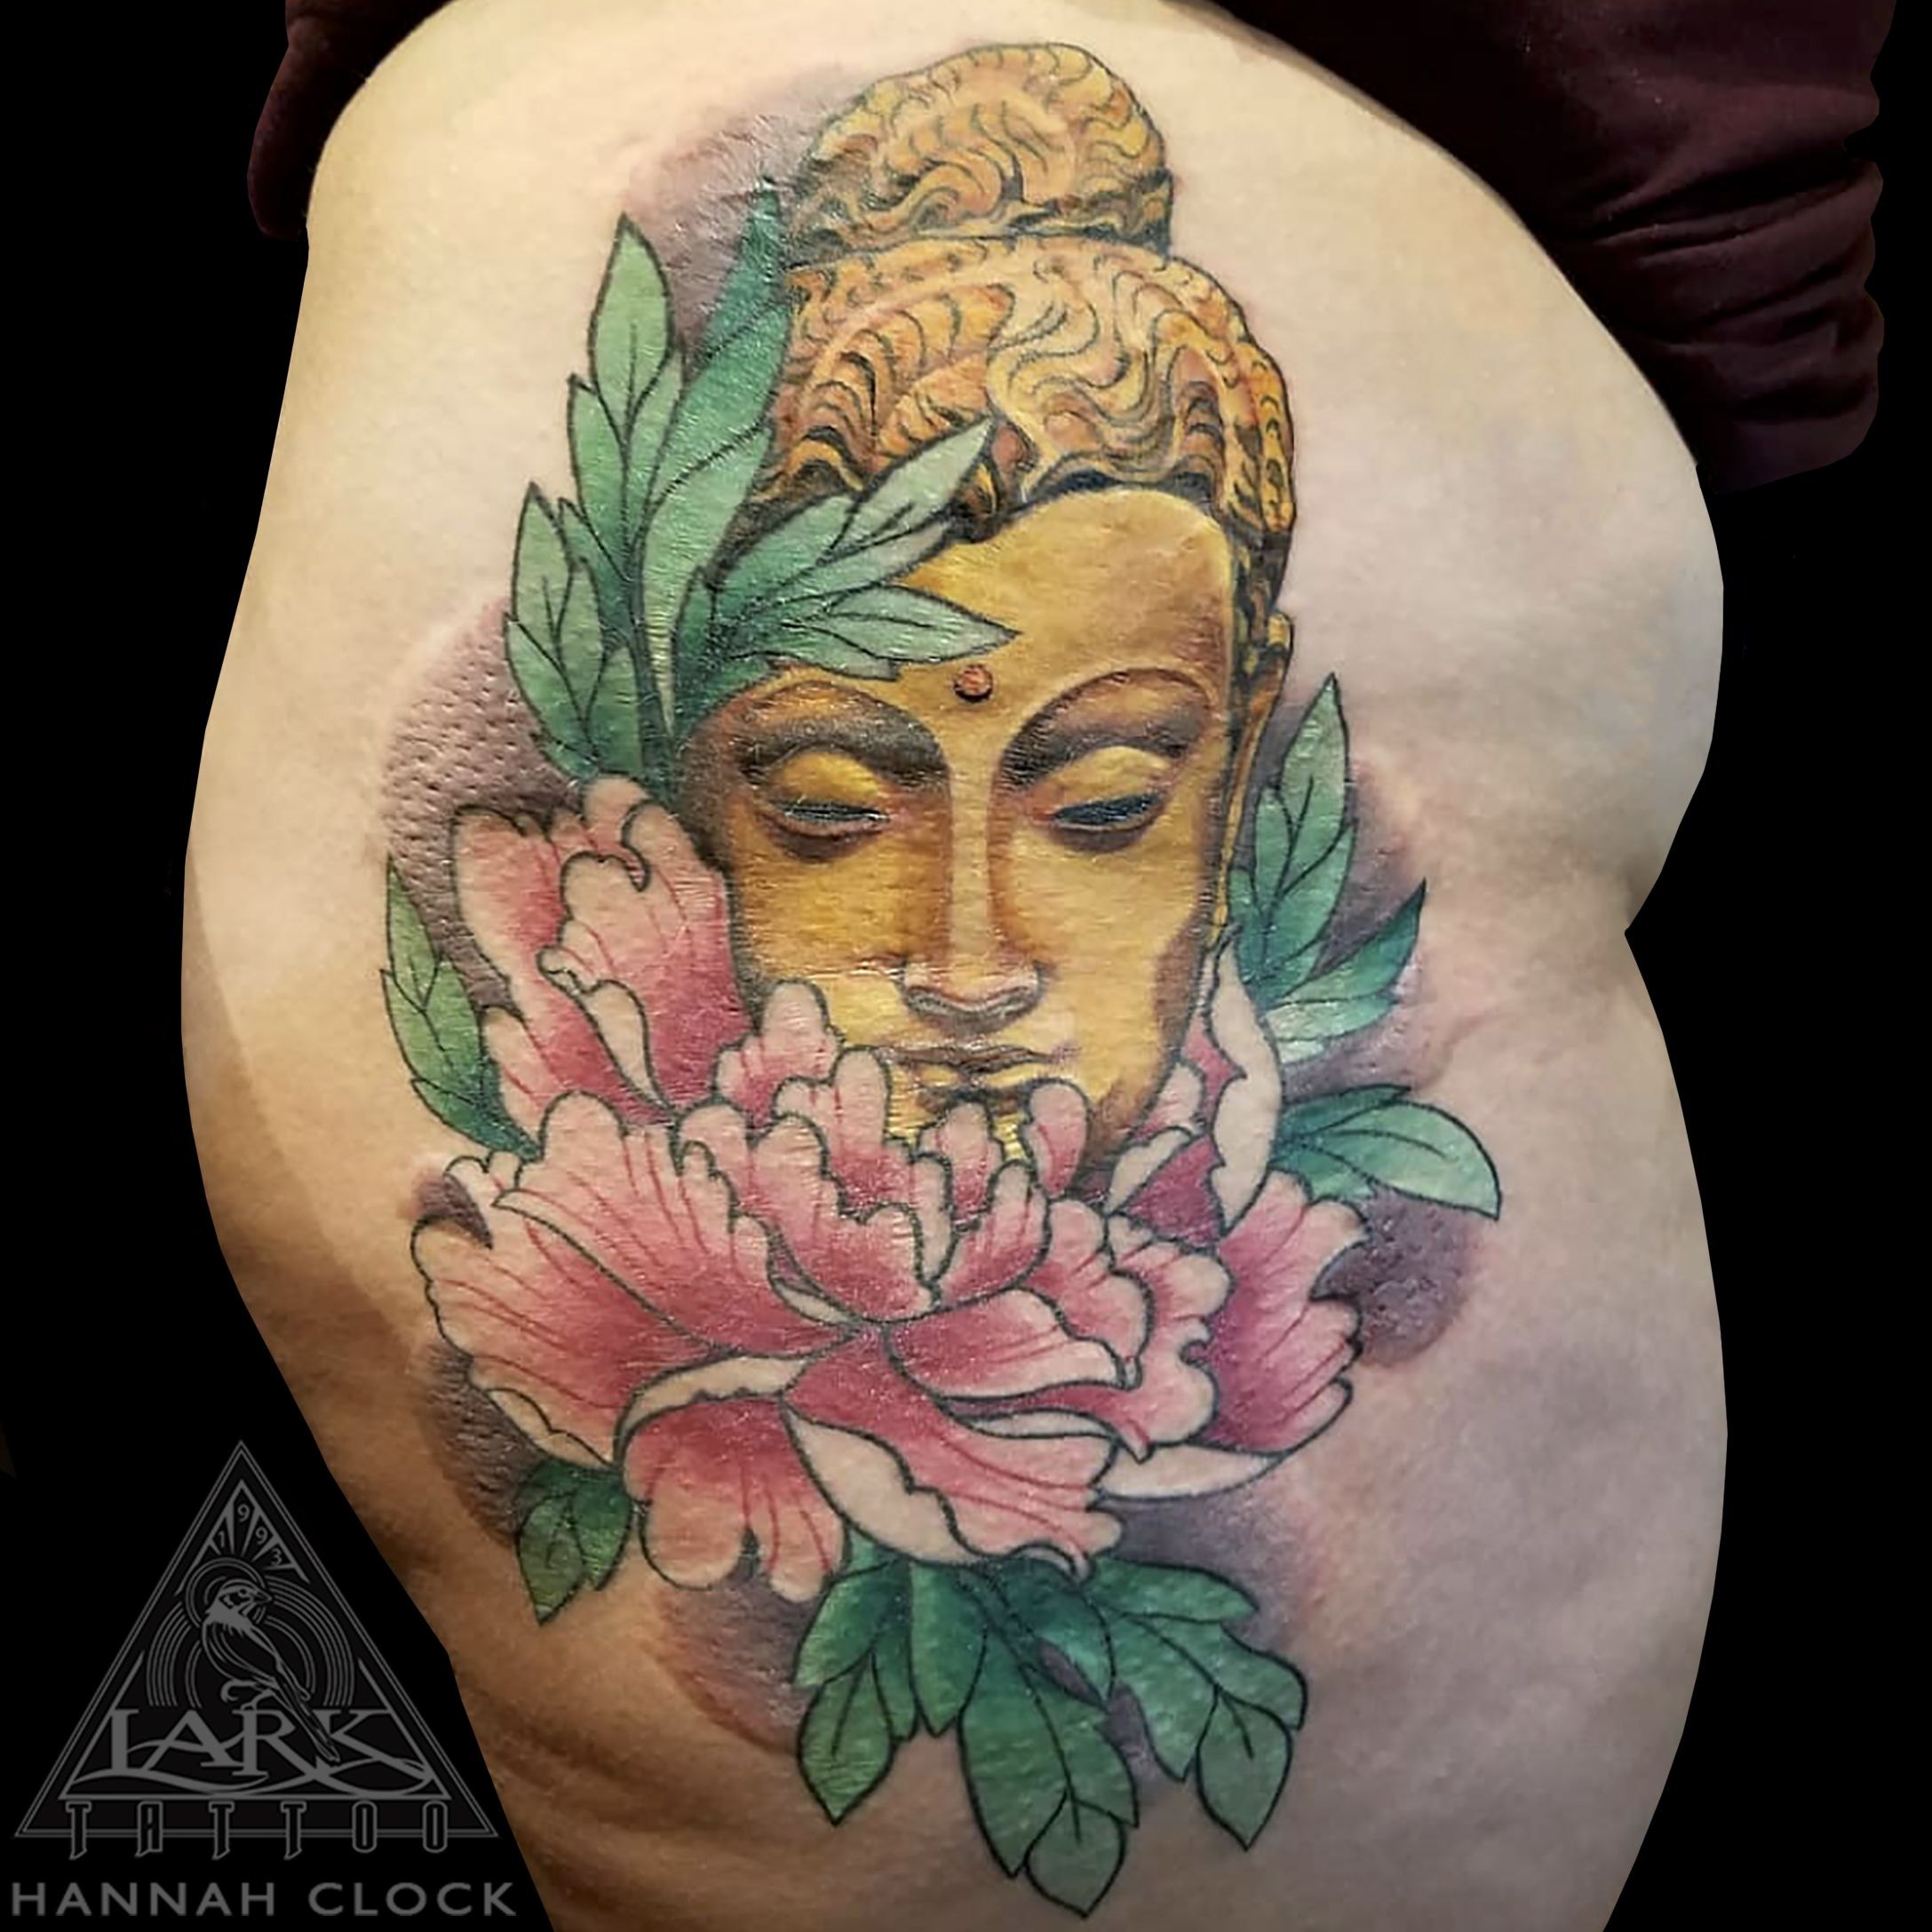 Buddha, BuddhaTattoo, ColorTattoo, HipTattoo, GoldenBuddha, GoldenBuddhaTattoo, Peony, PeonyTattoo, LonIslandTattooArtist, LadyTattooers, FeminineTattoo, FemaleArtist, FemaleTattooArtist, FemaleTattooer, tattoo, tattoos, tat, tats, tatts, tatted, tattedup, tattoist, tattooed, inked, inkedup, ink, tattoooftheday, amazingink, bodyart, larktattoo, larktattoos, larktattoowestbury, westbury, longisland, NY, NewYork, usa, art